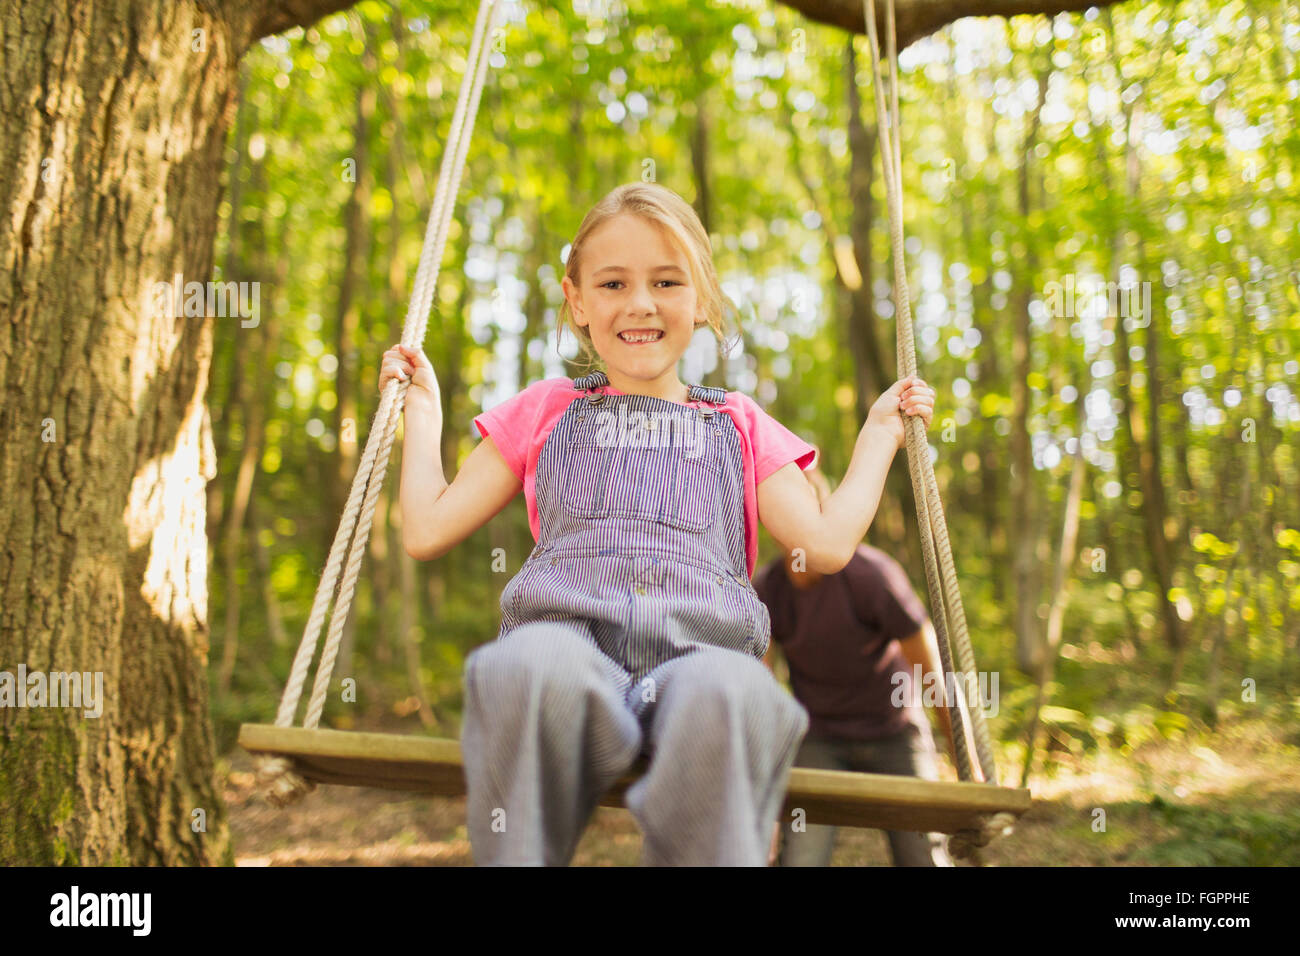 Portrait smiling girl swinging on rope swing in forest - Stock Image